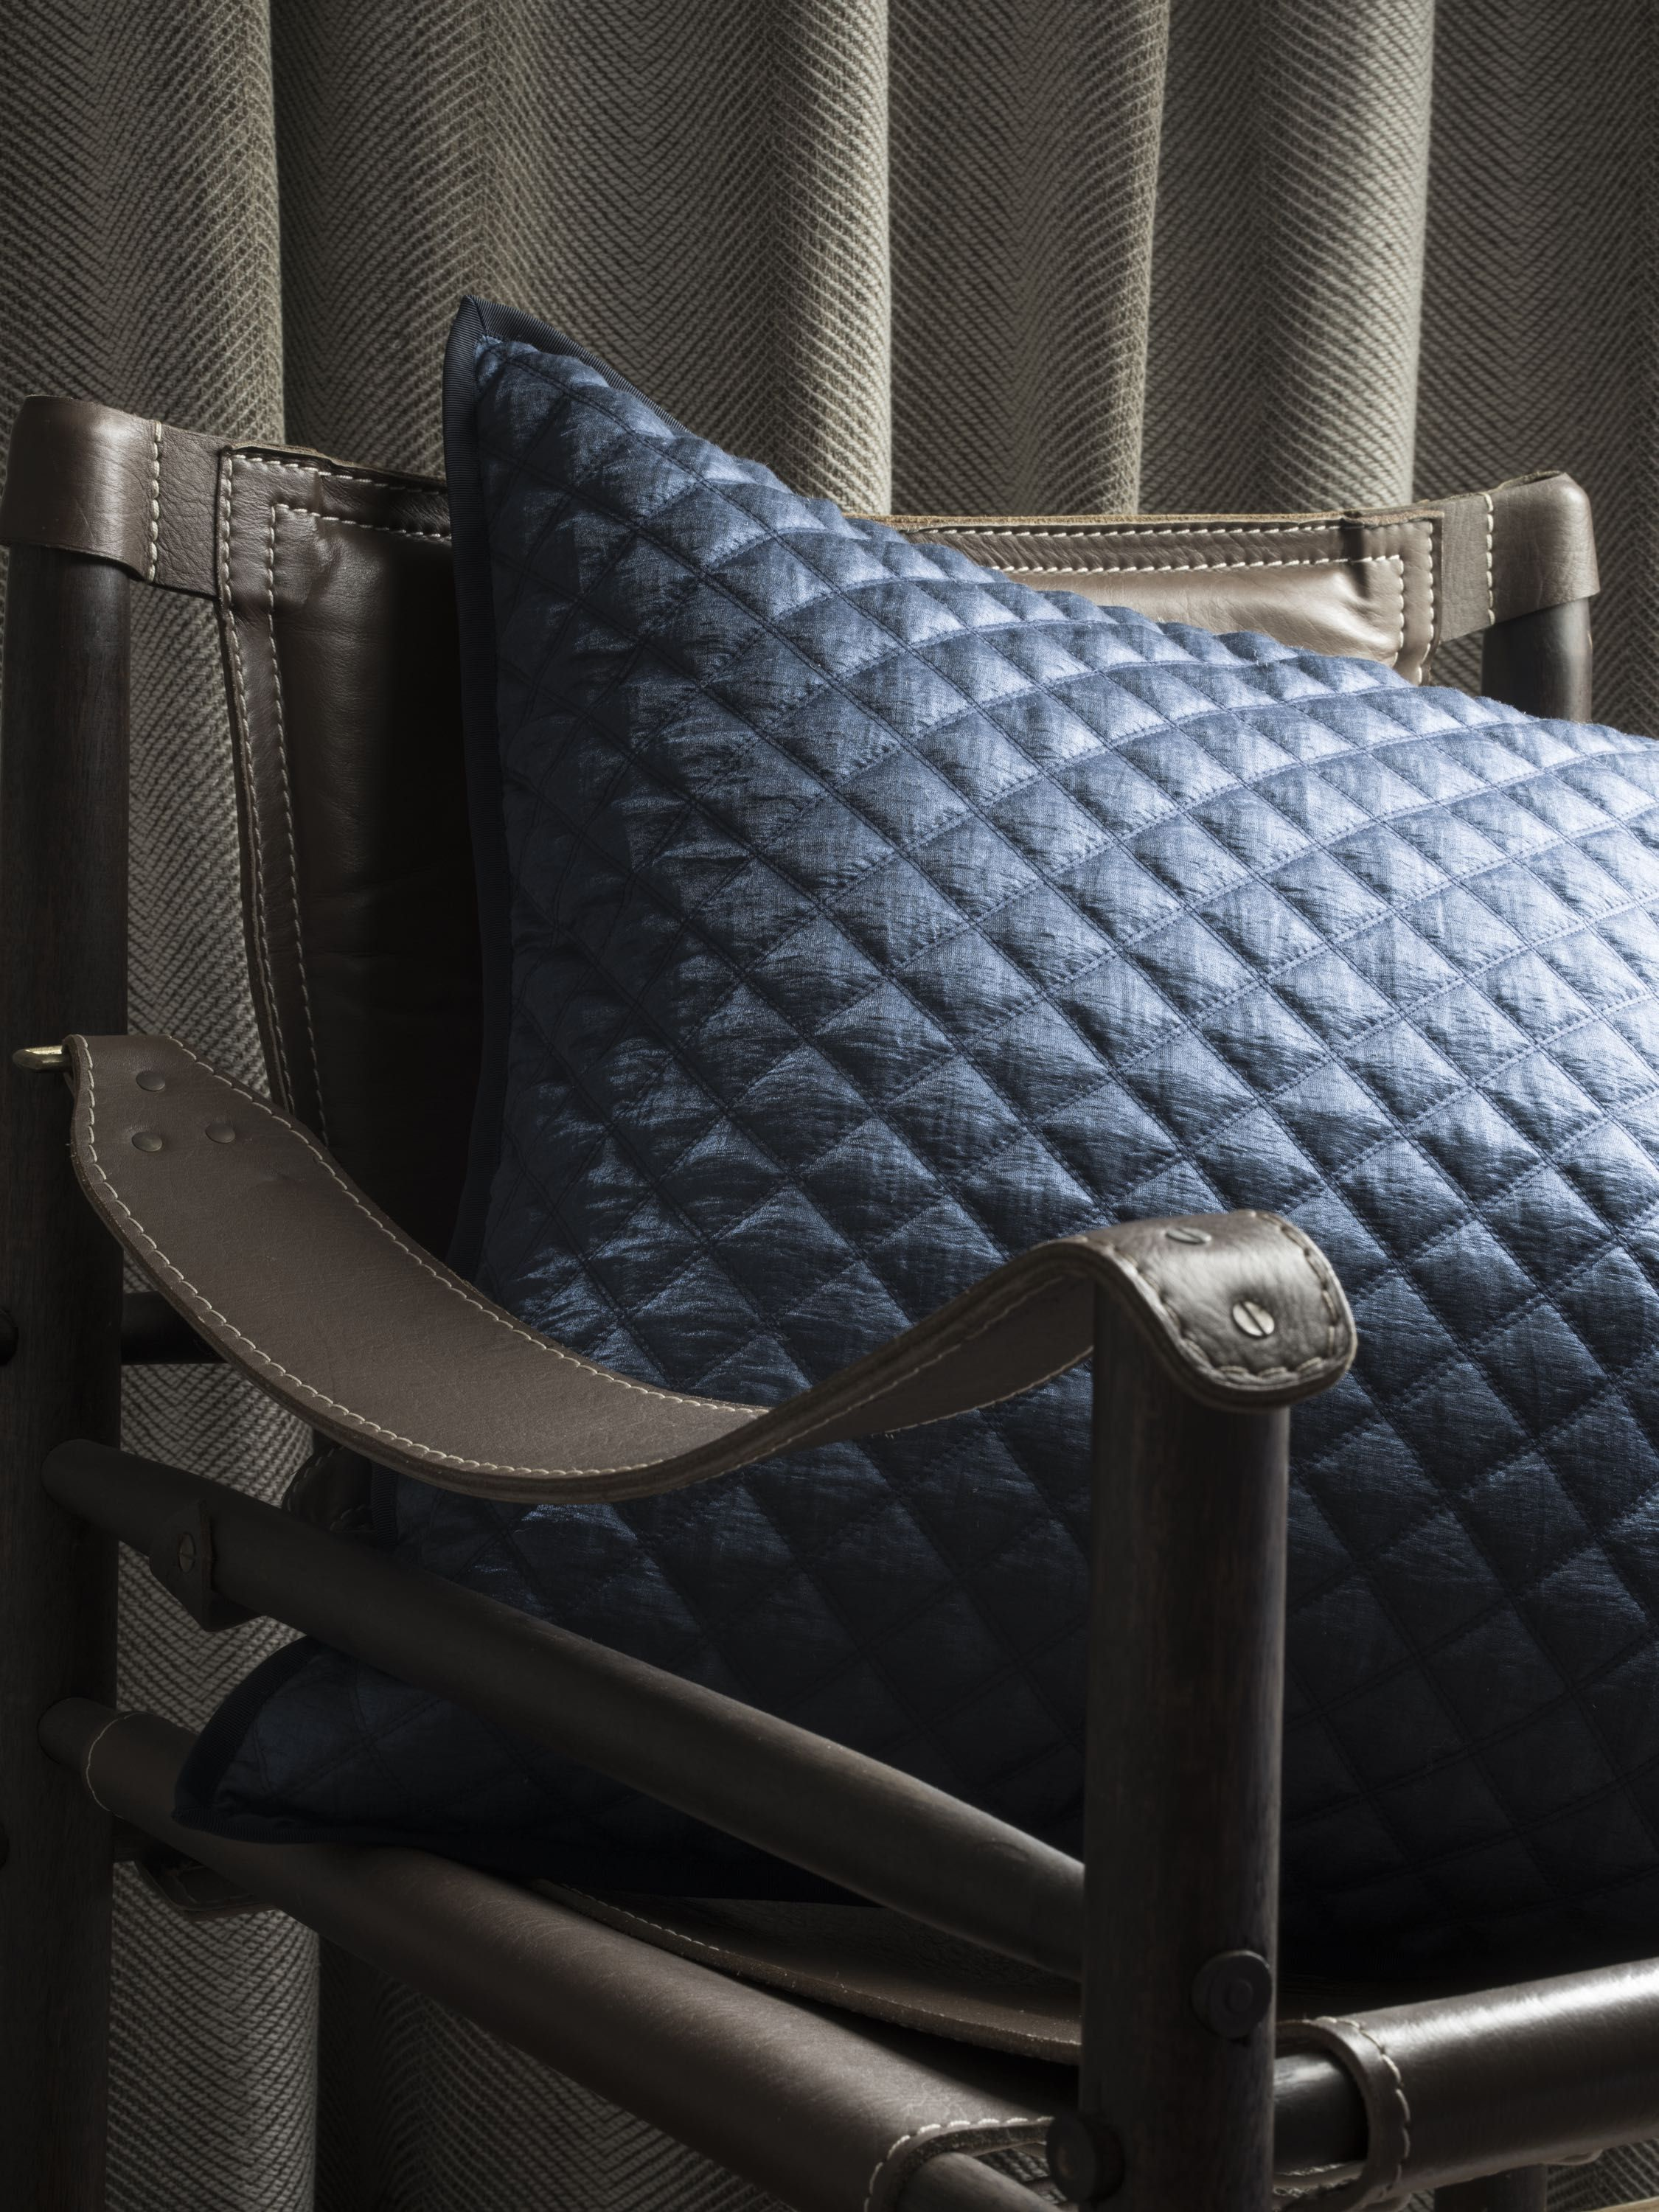 Opera Quilted Cushion In Sapphire With A Matt Appearance